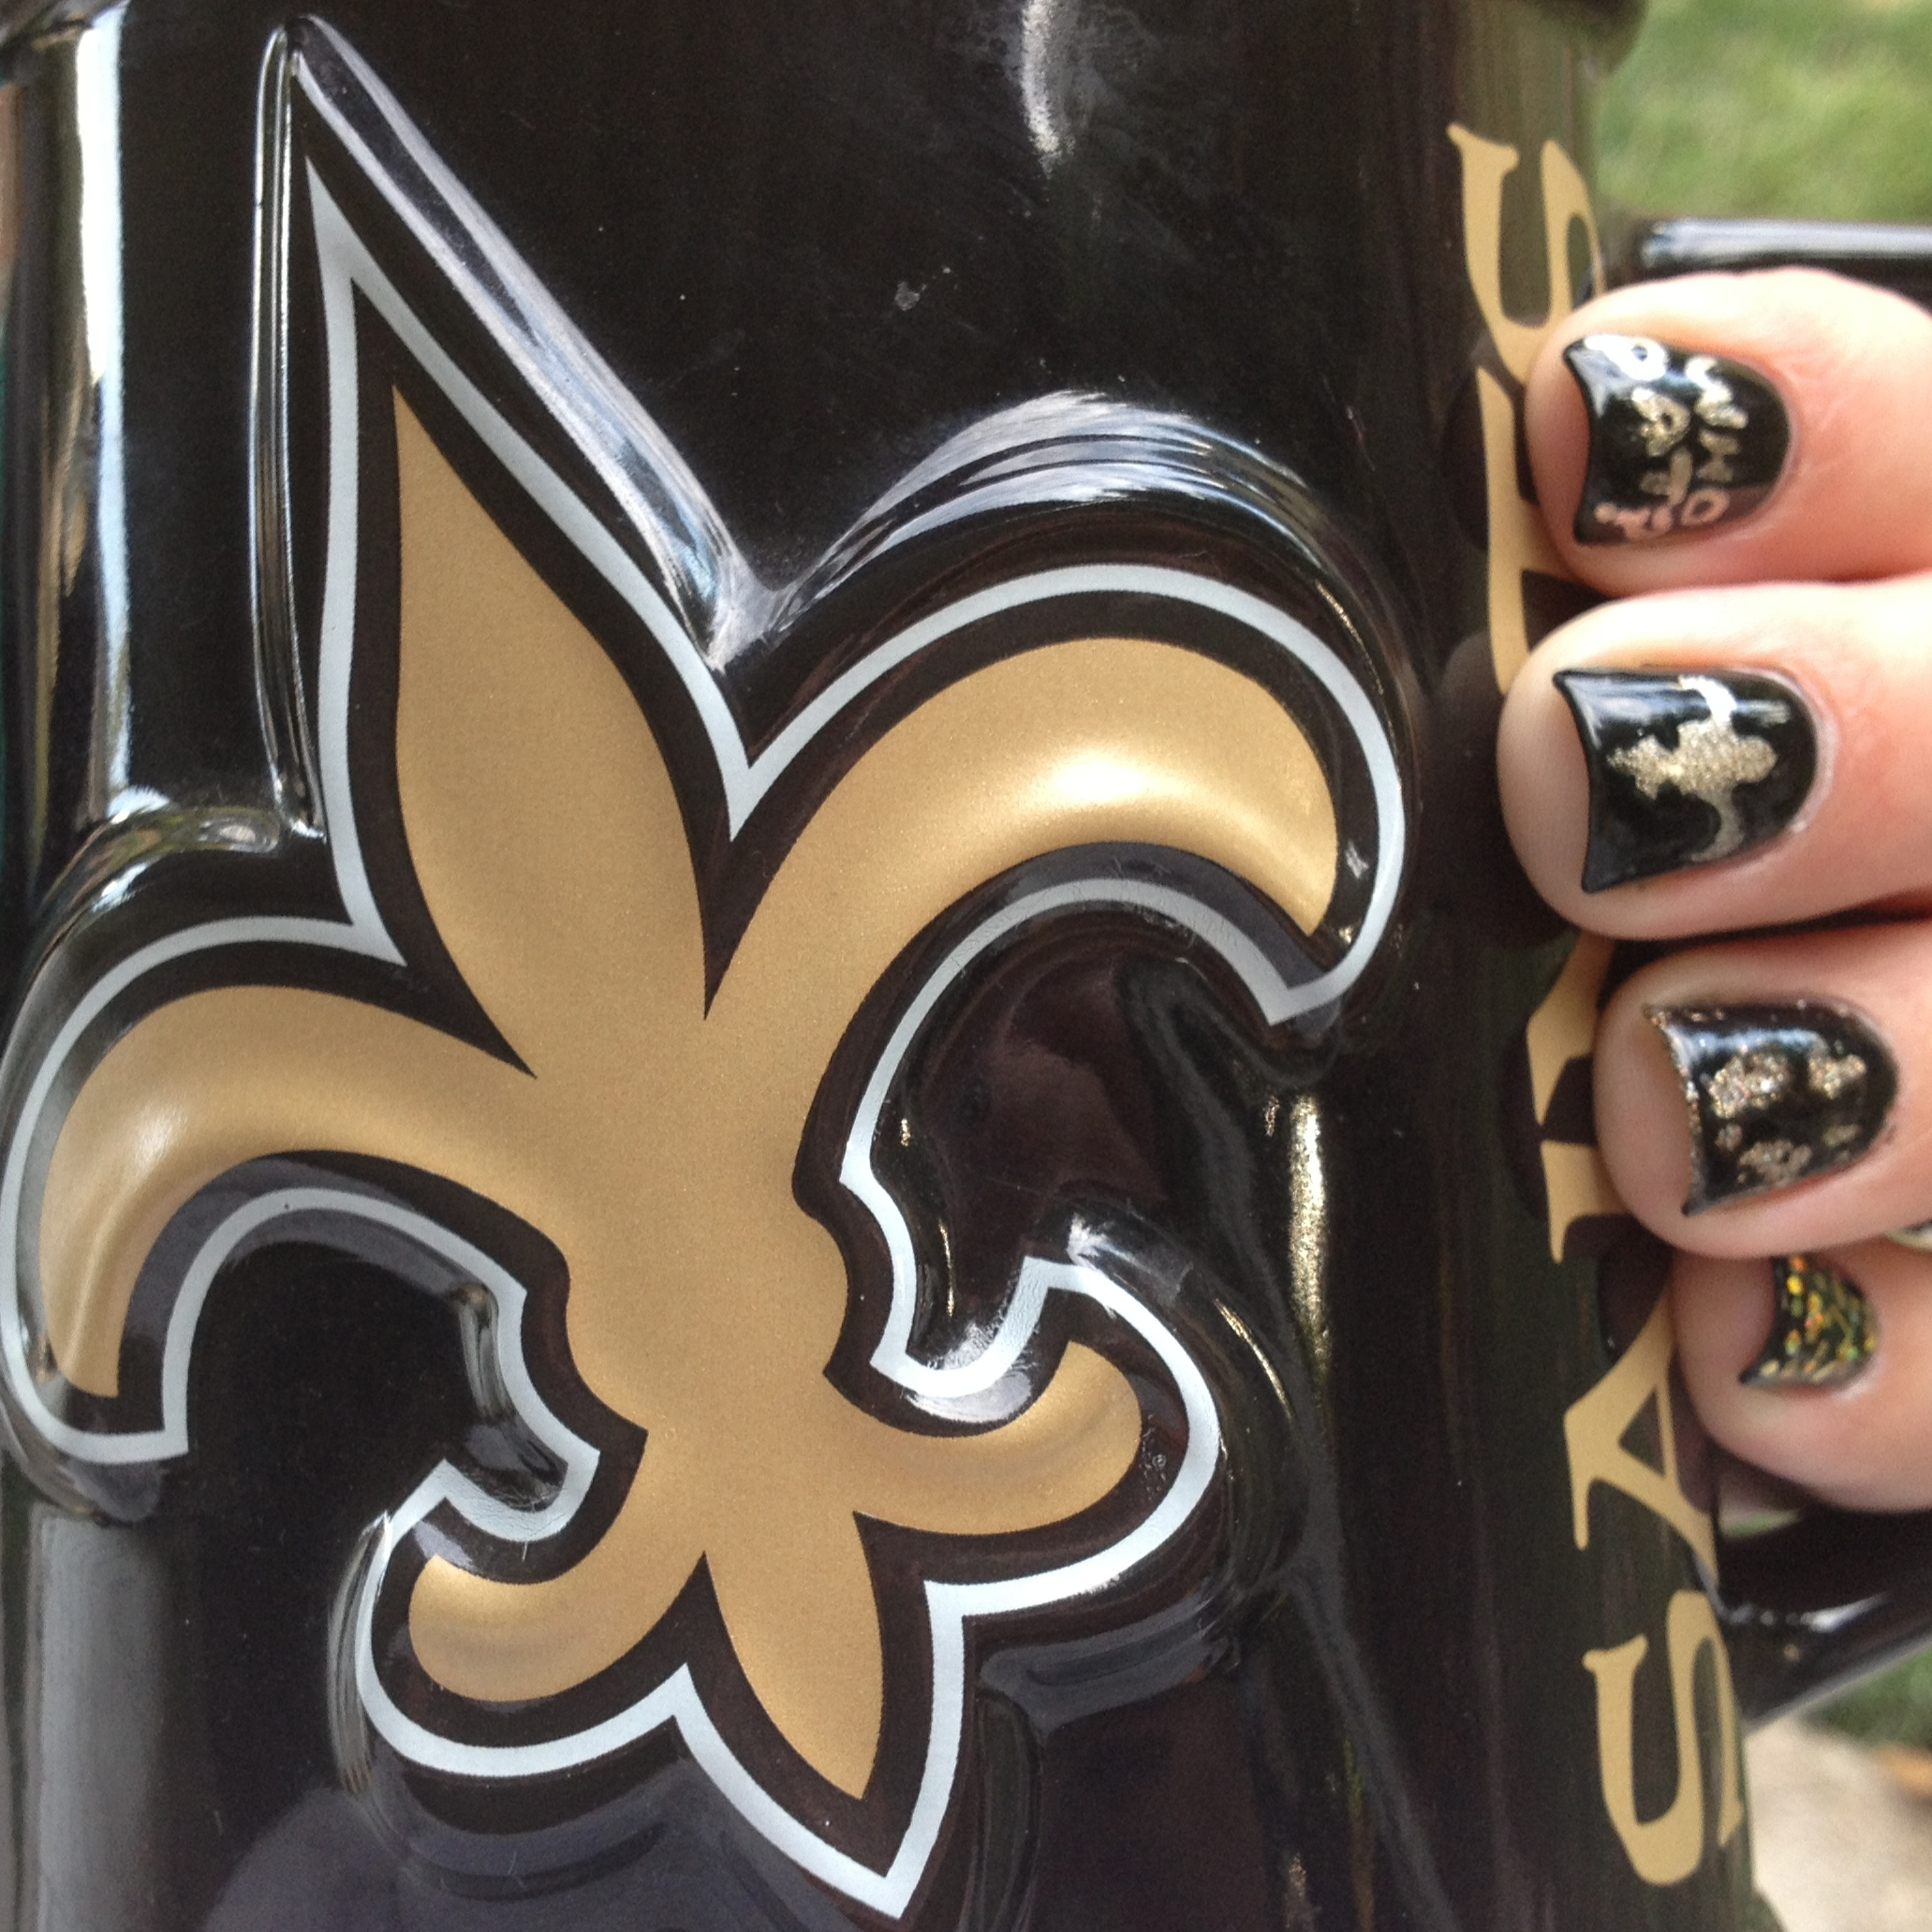 New Orleans Saints Nails